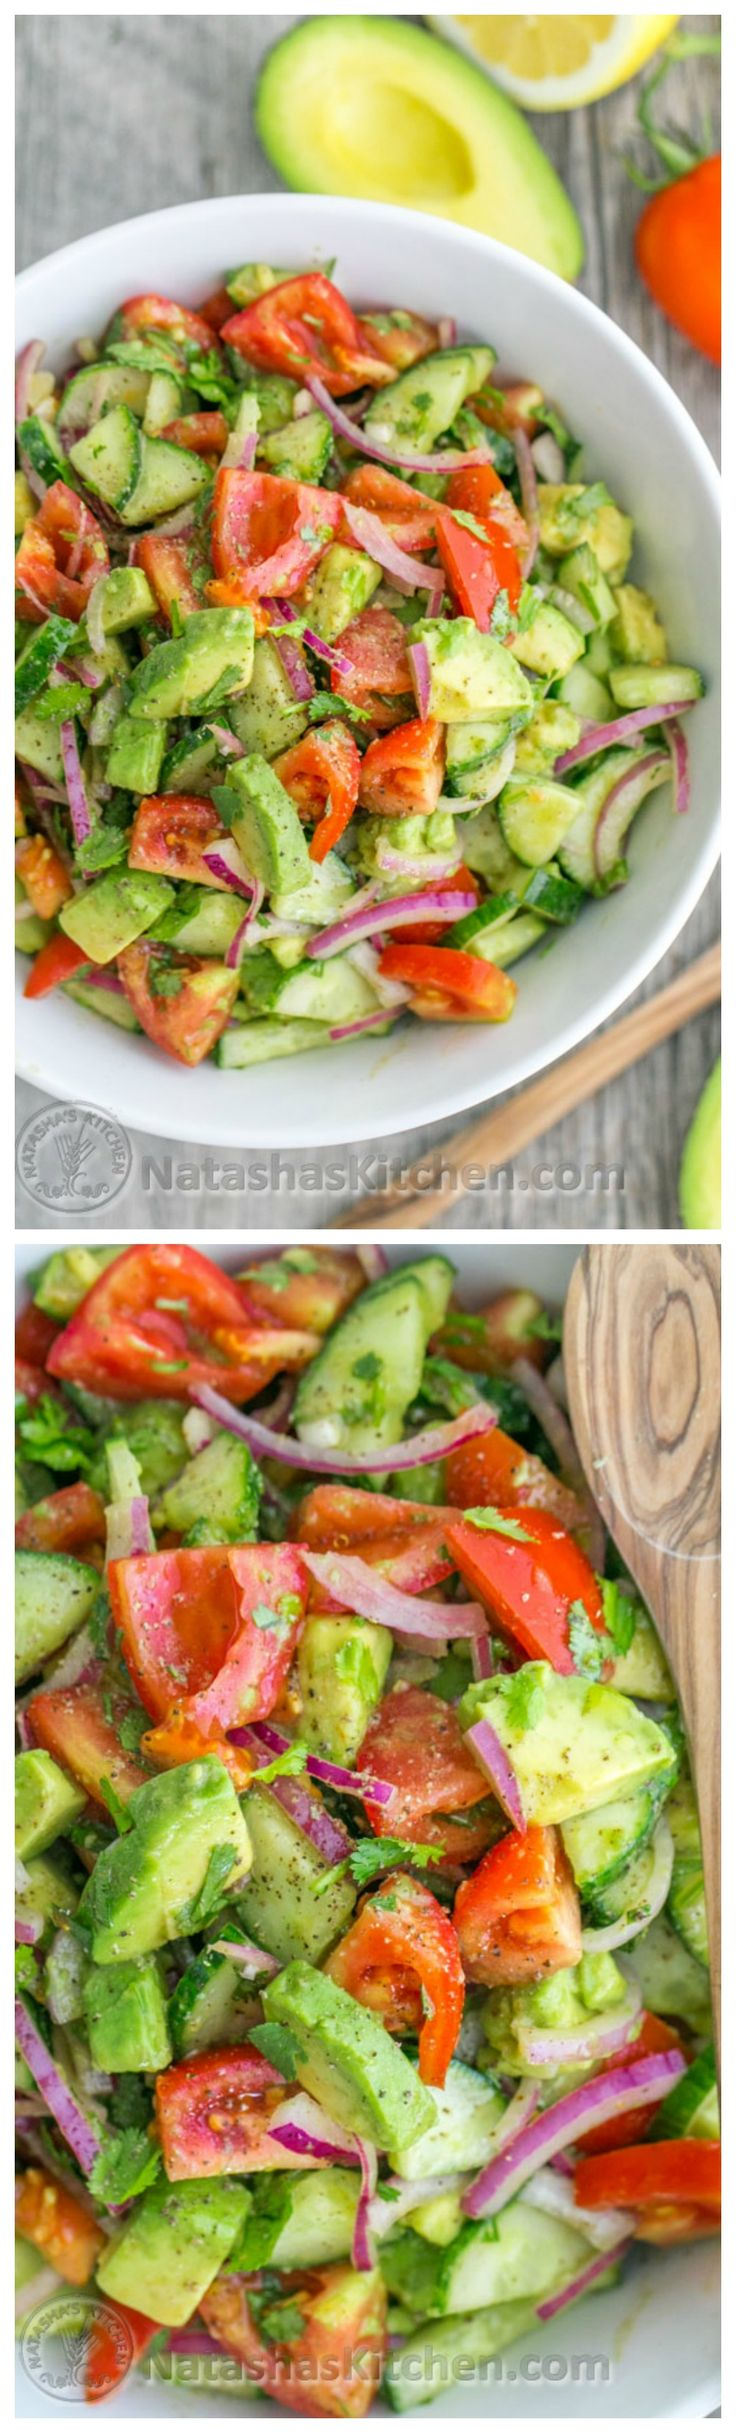 (Made)This Cucumber Tomato Avocado Salad recipe is a keeper! Easy, Excellent Salad | NatashasKitchen.com